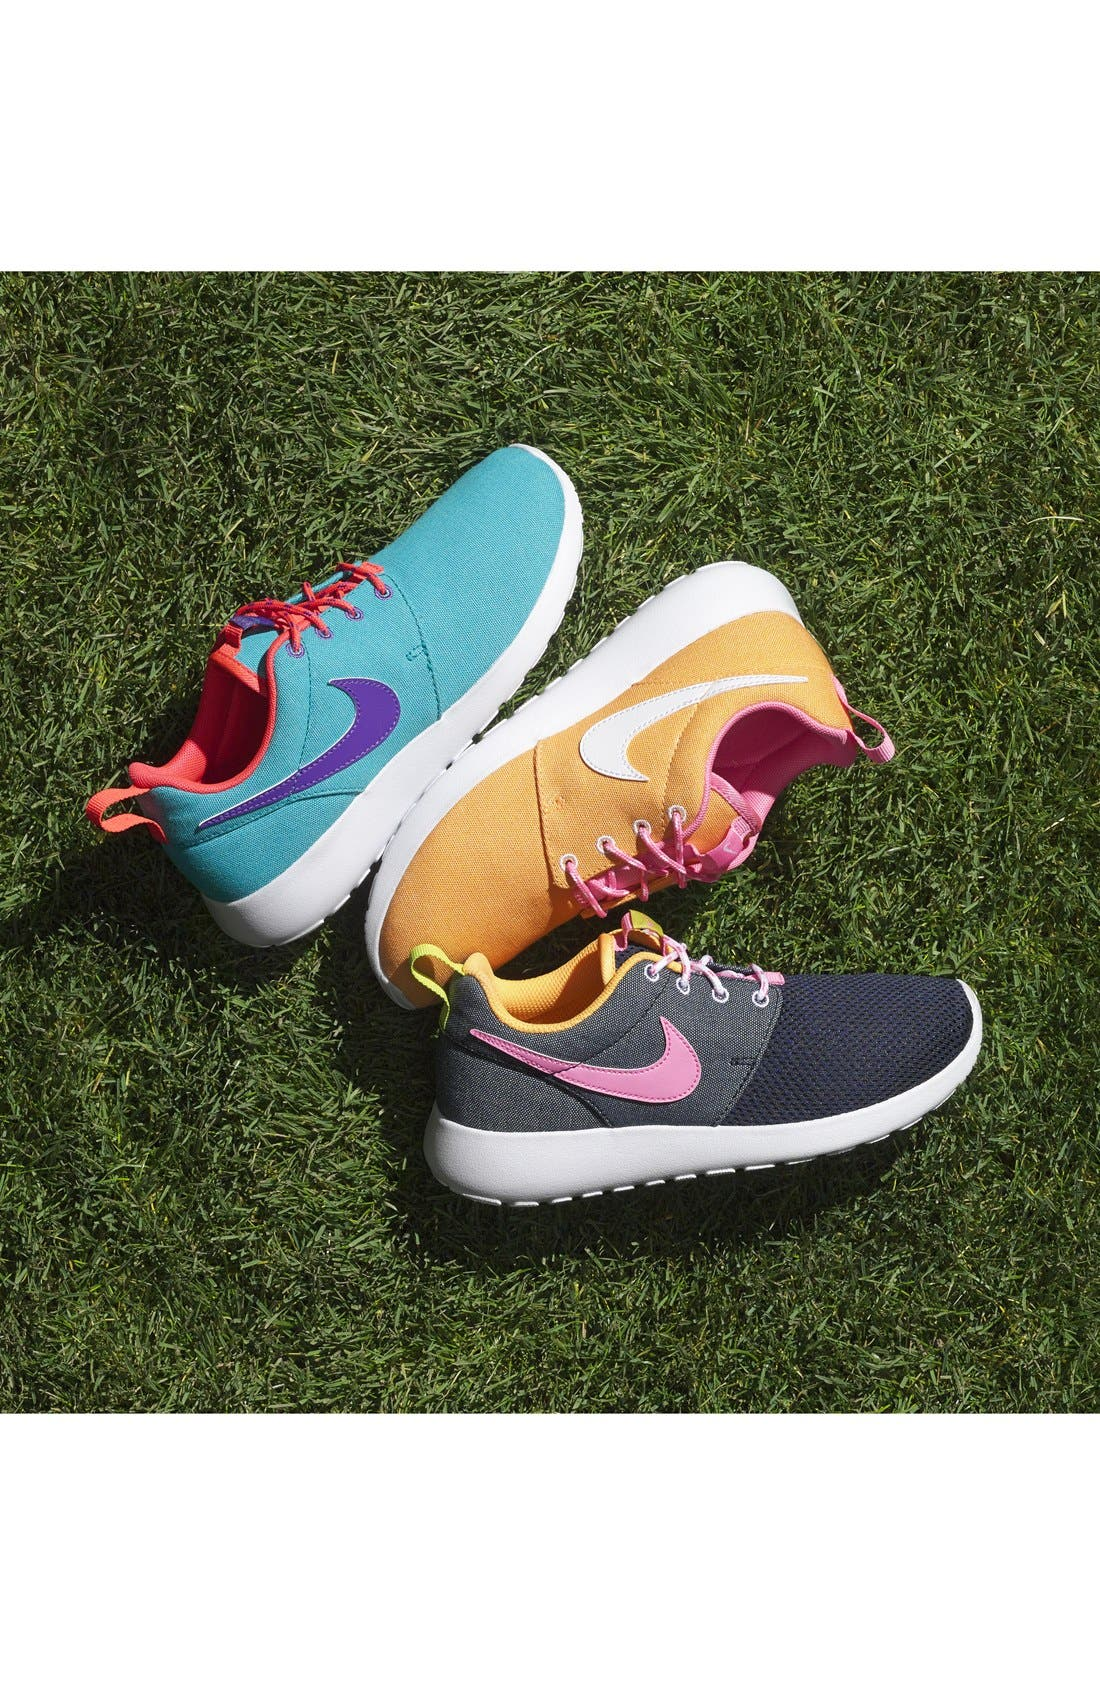 'Roshe Run' Athletic Shoe,                             Main thumbnail 1, color,                             010